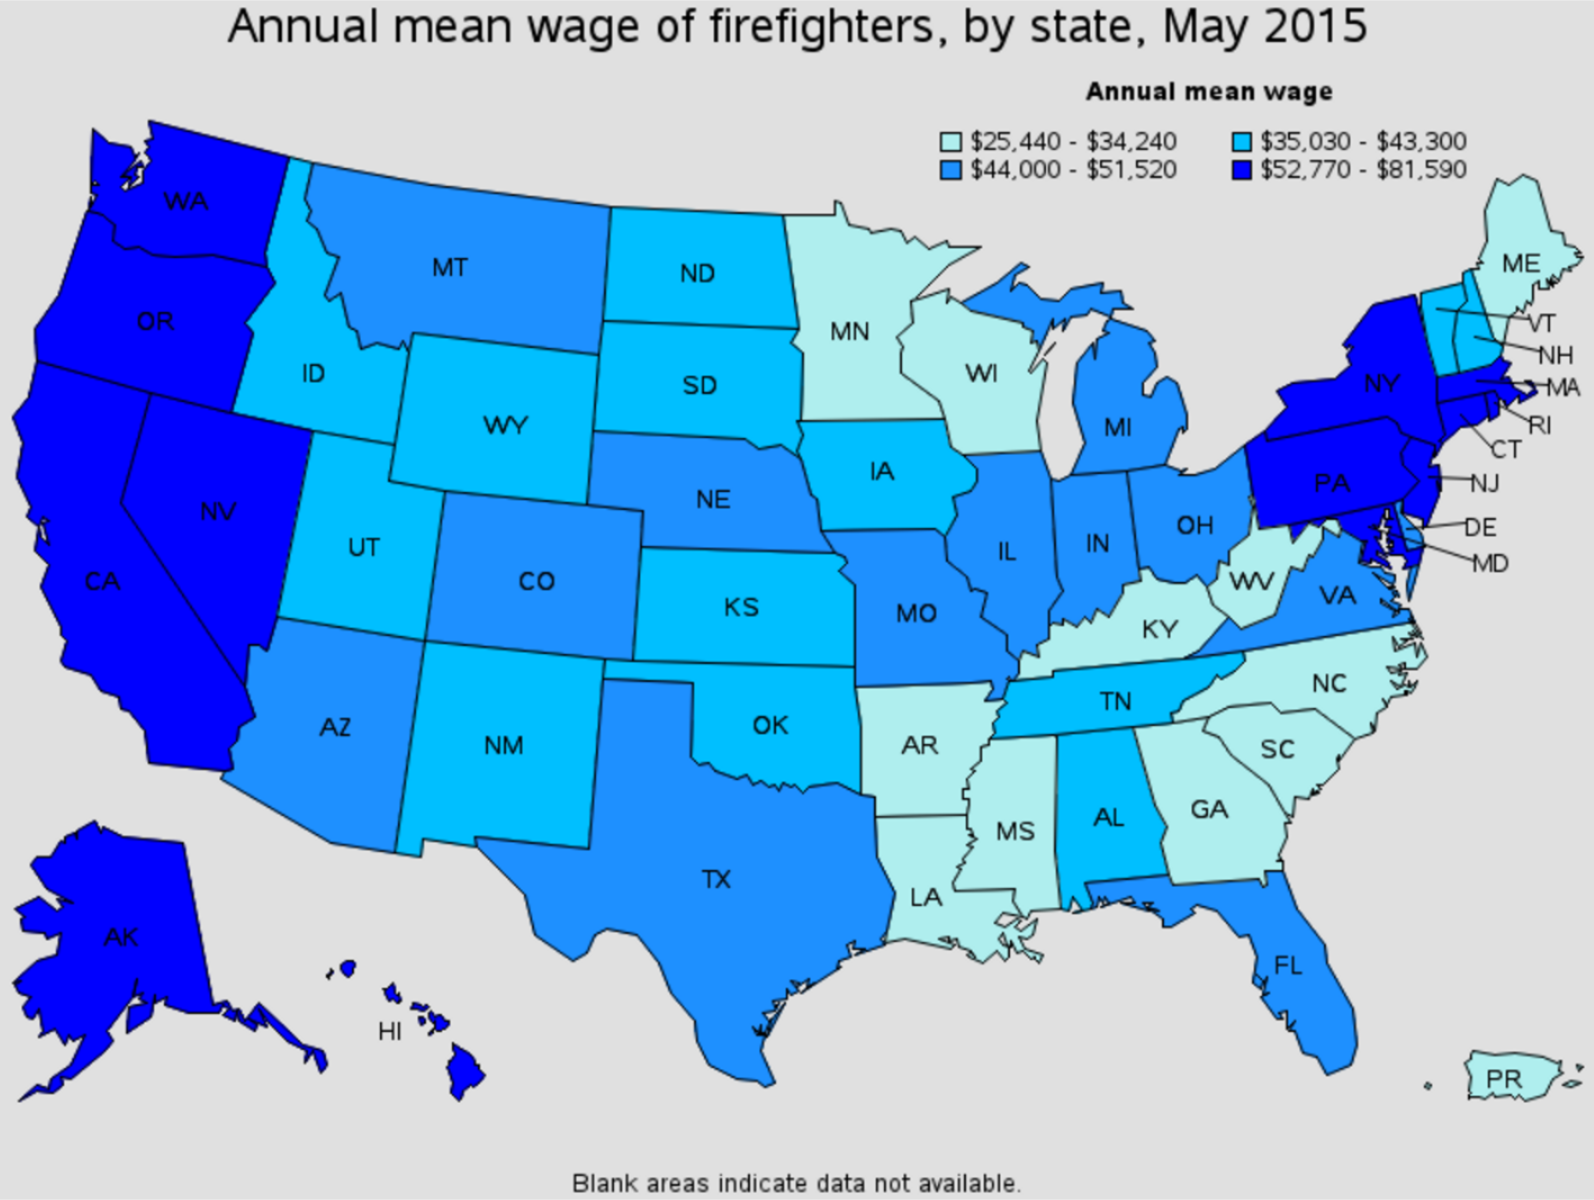 firefighter average salary by state Shreveport Louisiana